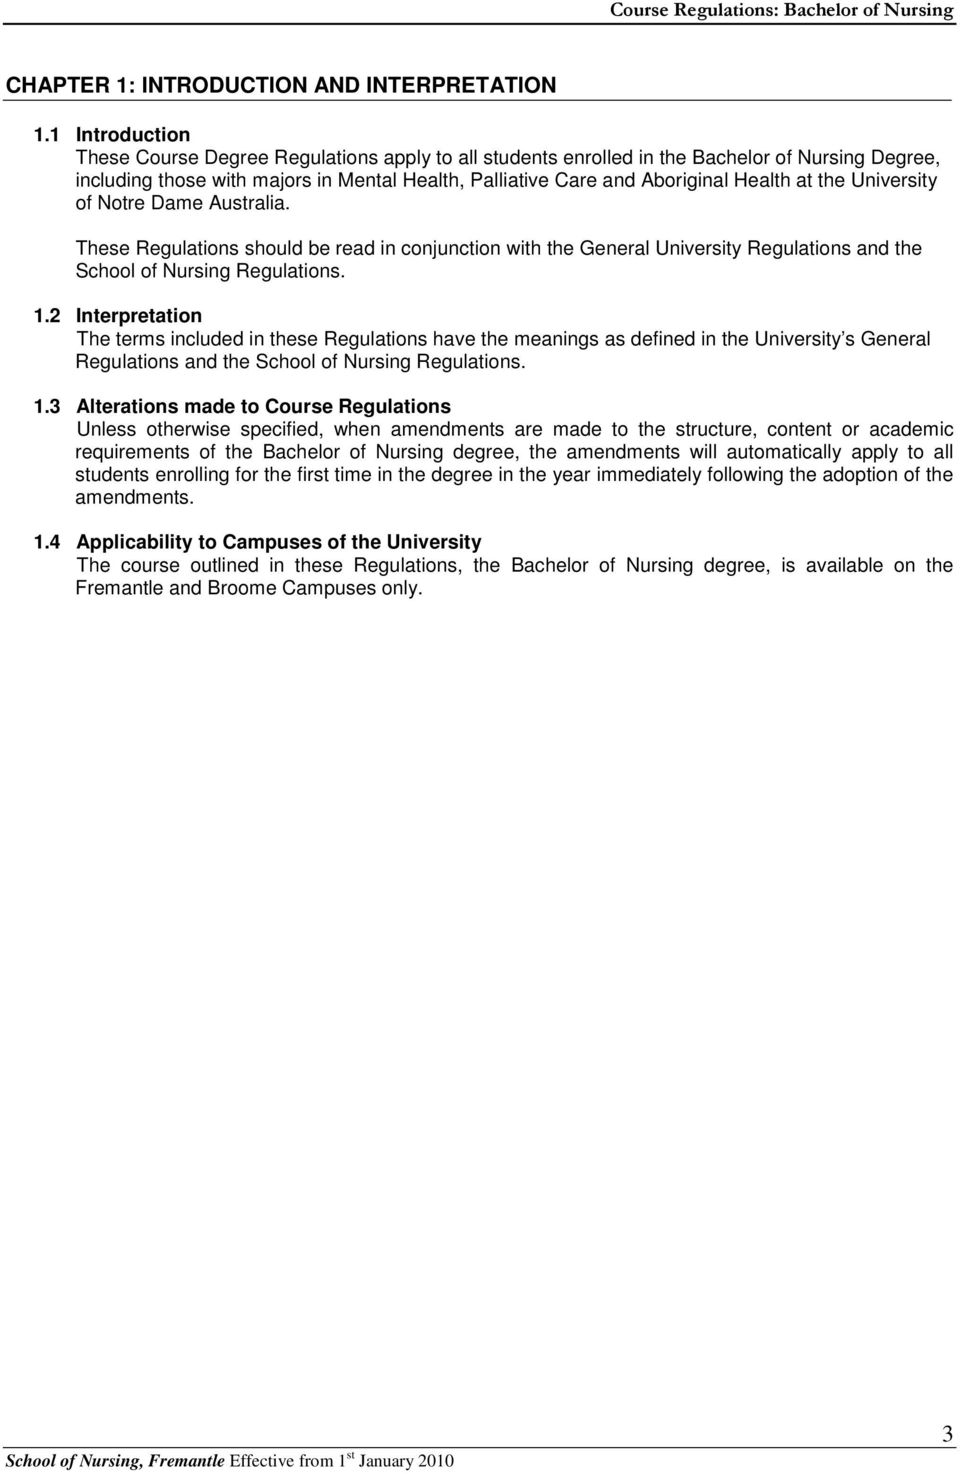 the University of Notre Dame Australia. These Regulations should be read in conjunction with the General University Regulations and the School of Nursing Regulations. 1.